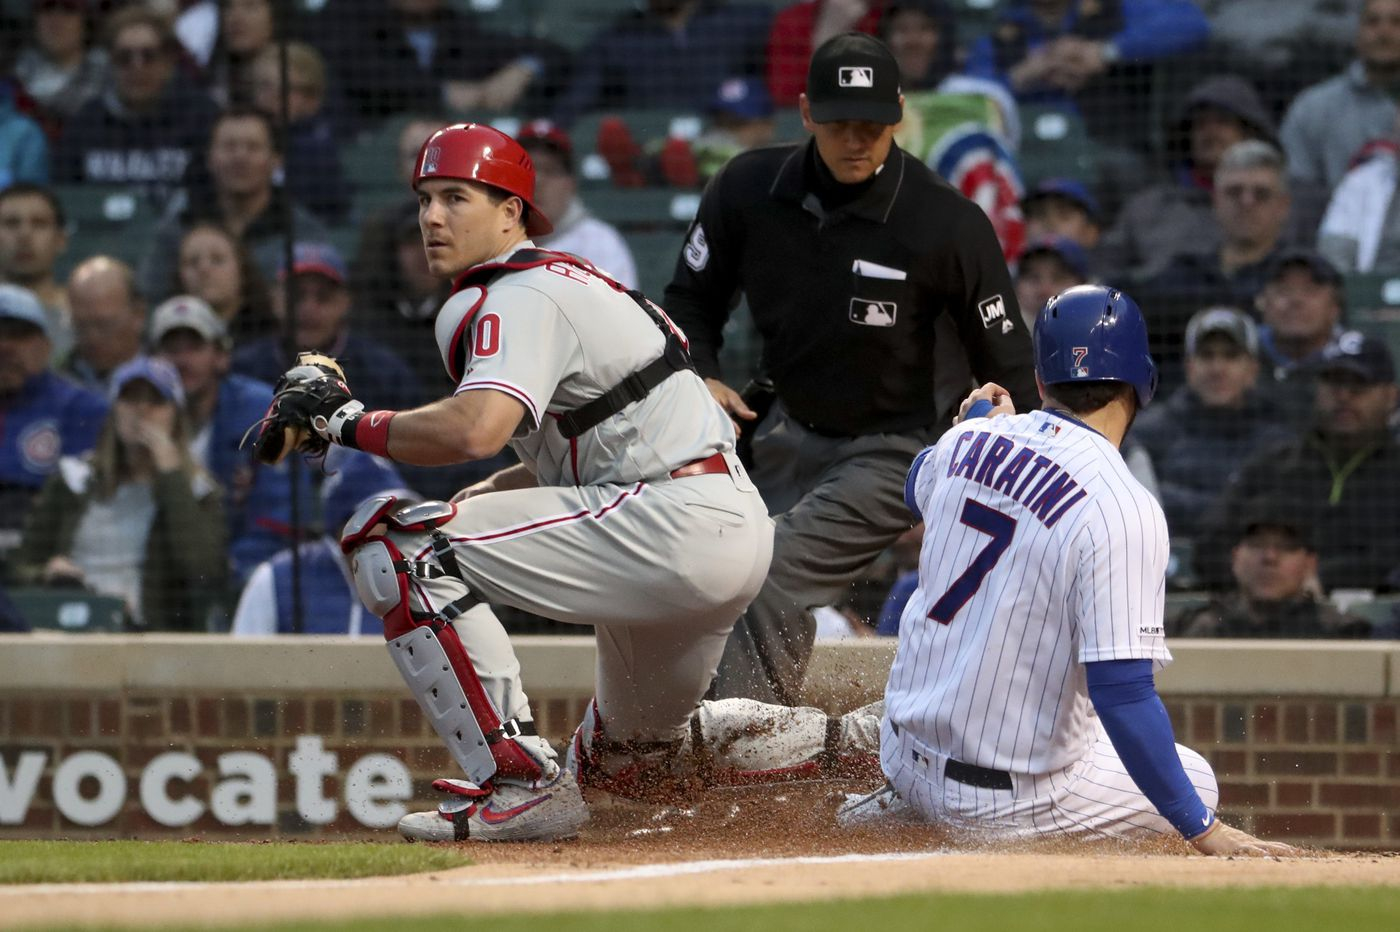 J.T. Realmuto leads Phillies from every side of the plate in 5-4 win over Cubs